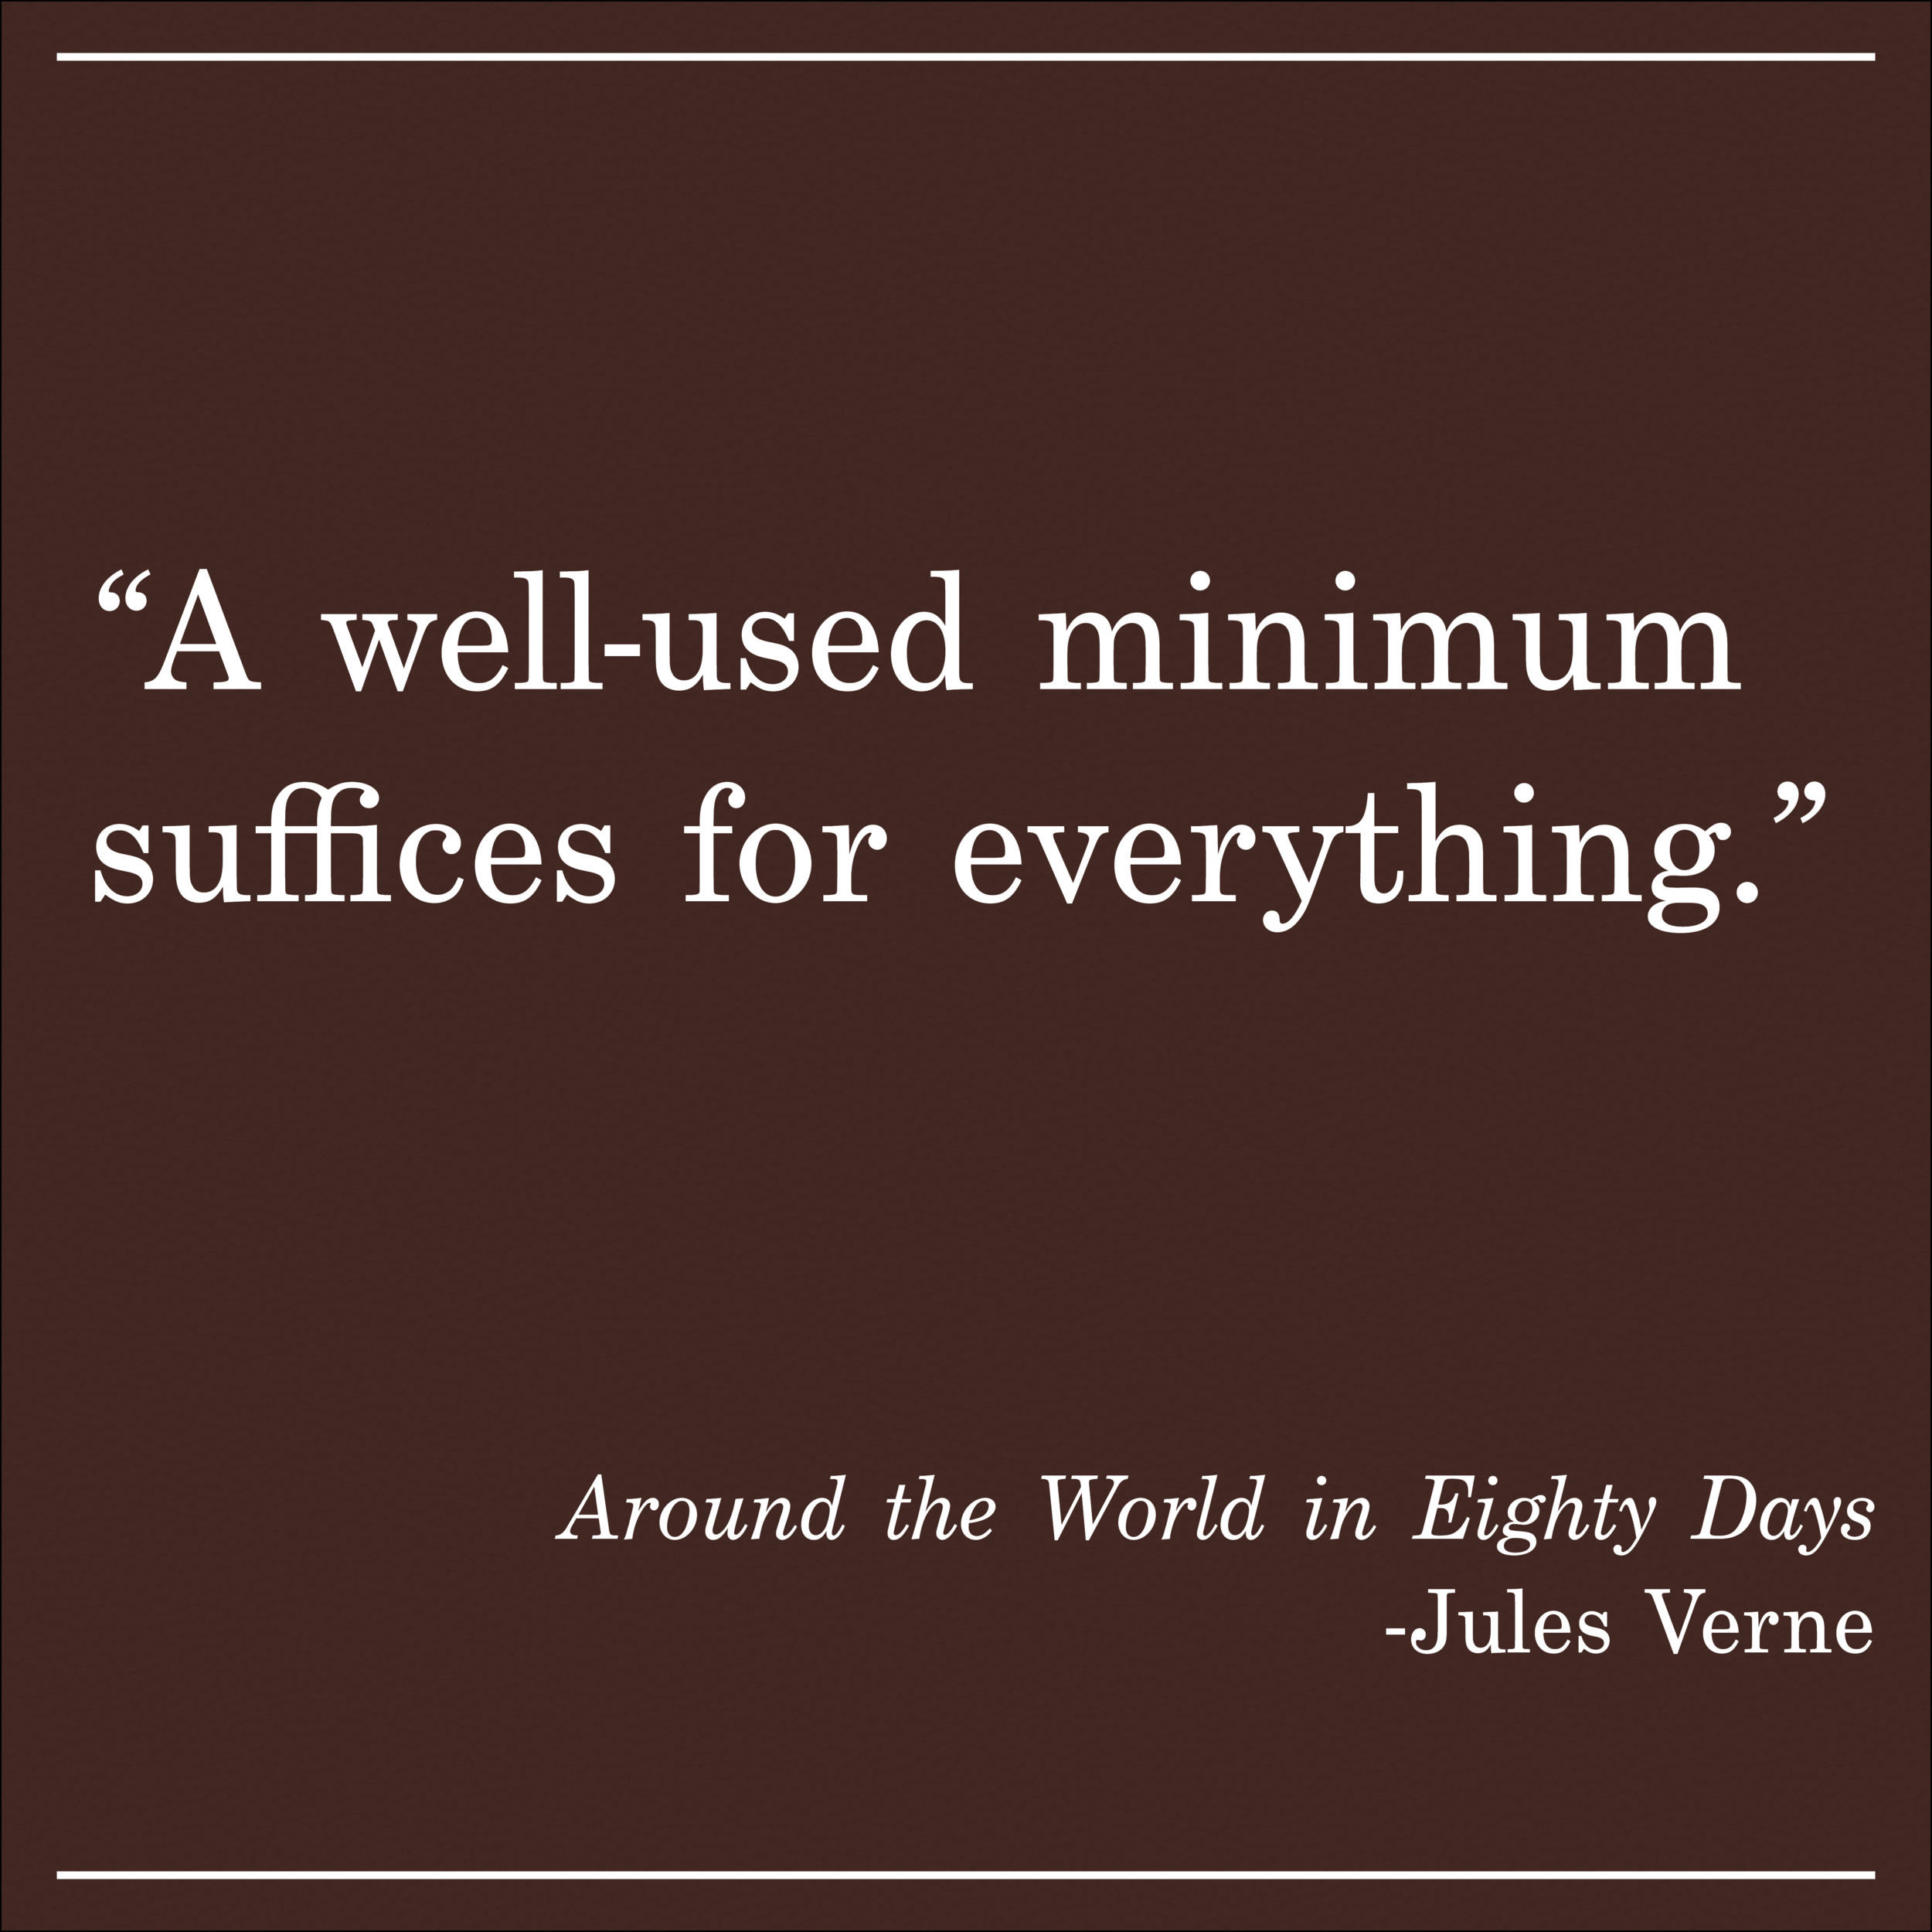 Daily Quote Around the World in Eighty Days Jules Verne